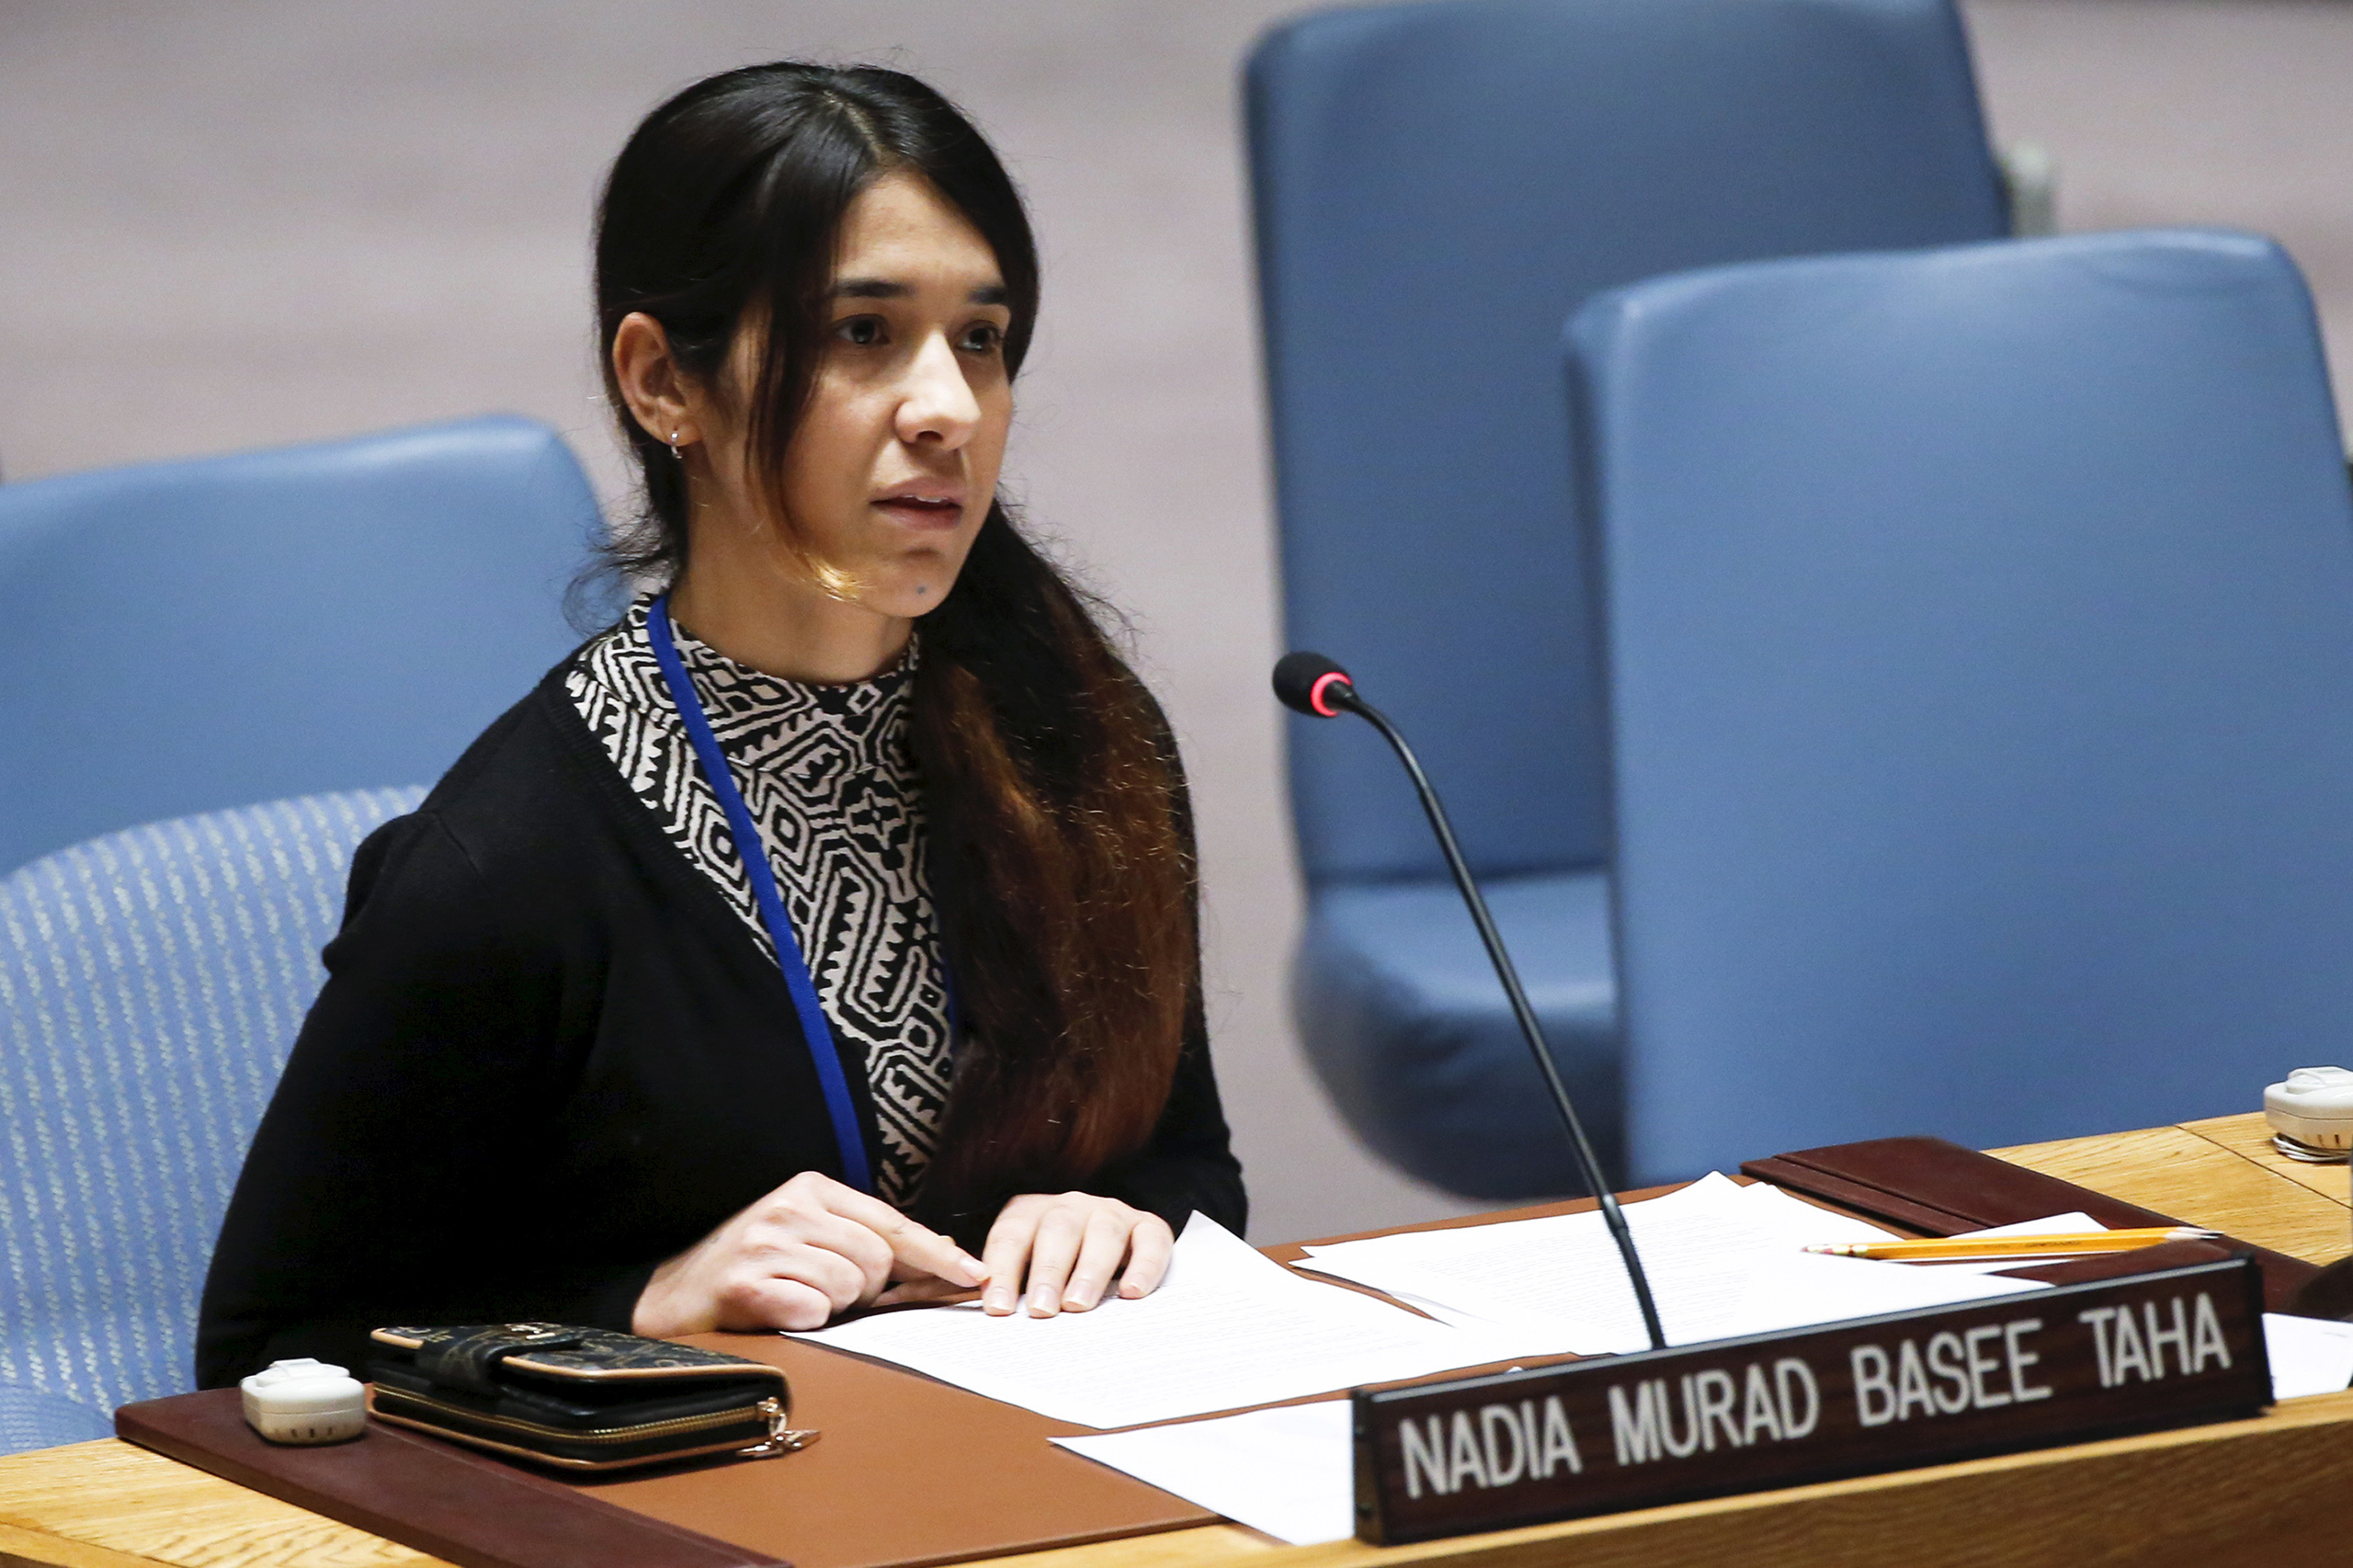 Nadia Murad Basee Taha, a 21-year-old Iraqi woman of the Yezidi minority, speaks to members of the U.N. Security Council at the U.N. headquarters in New York City on Dec. 16, 2015